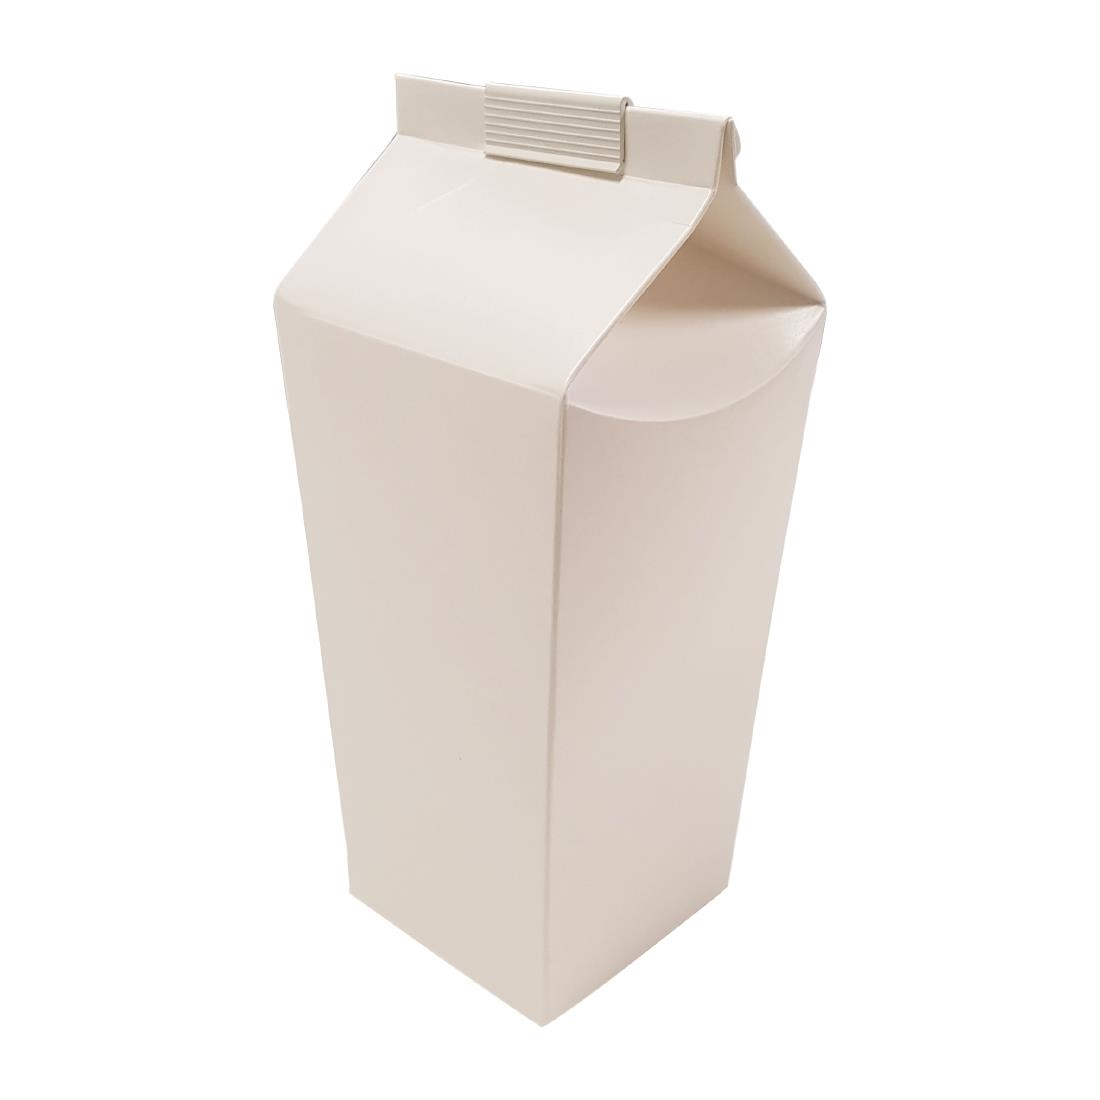 Image of 2 Pint Beer Cartons White (Pack of 100) Pack of 100